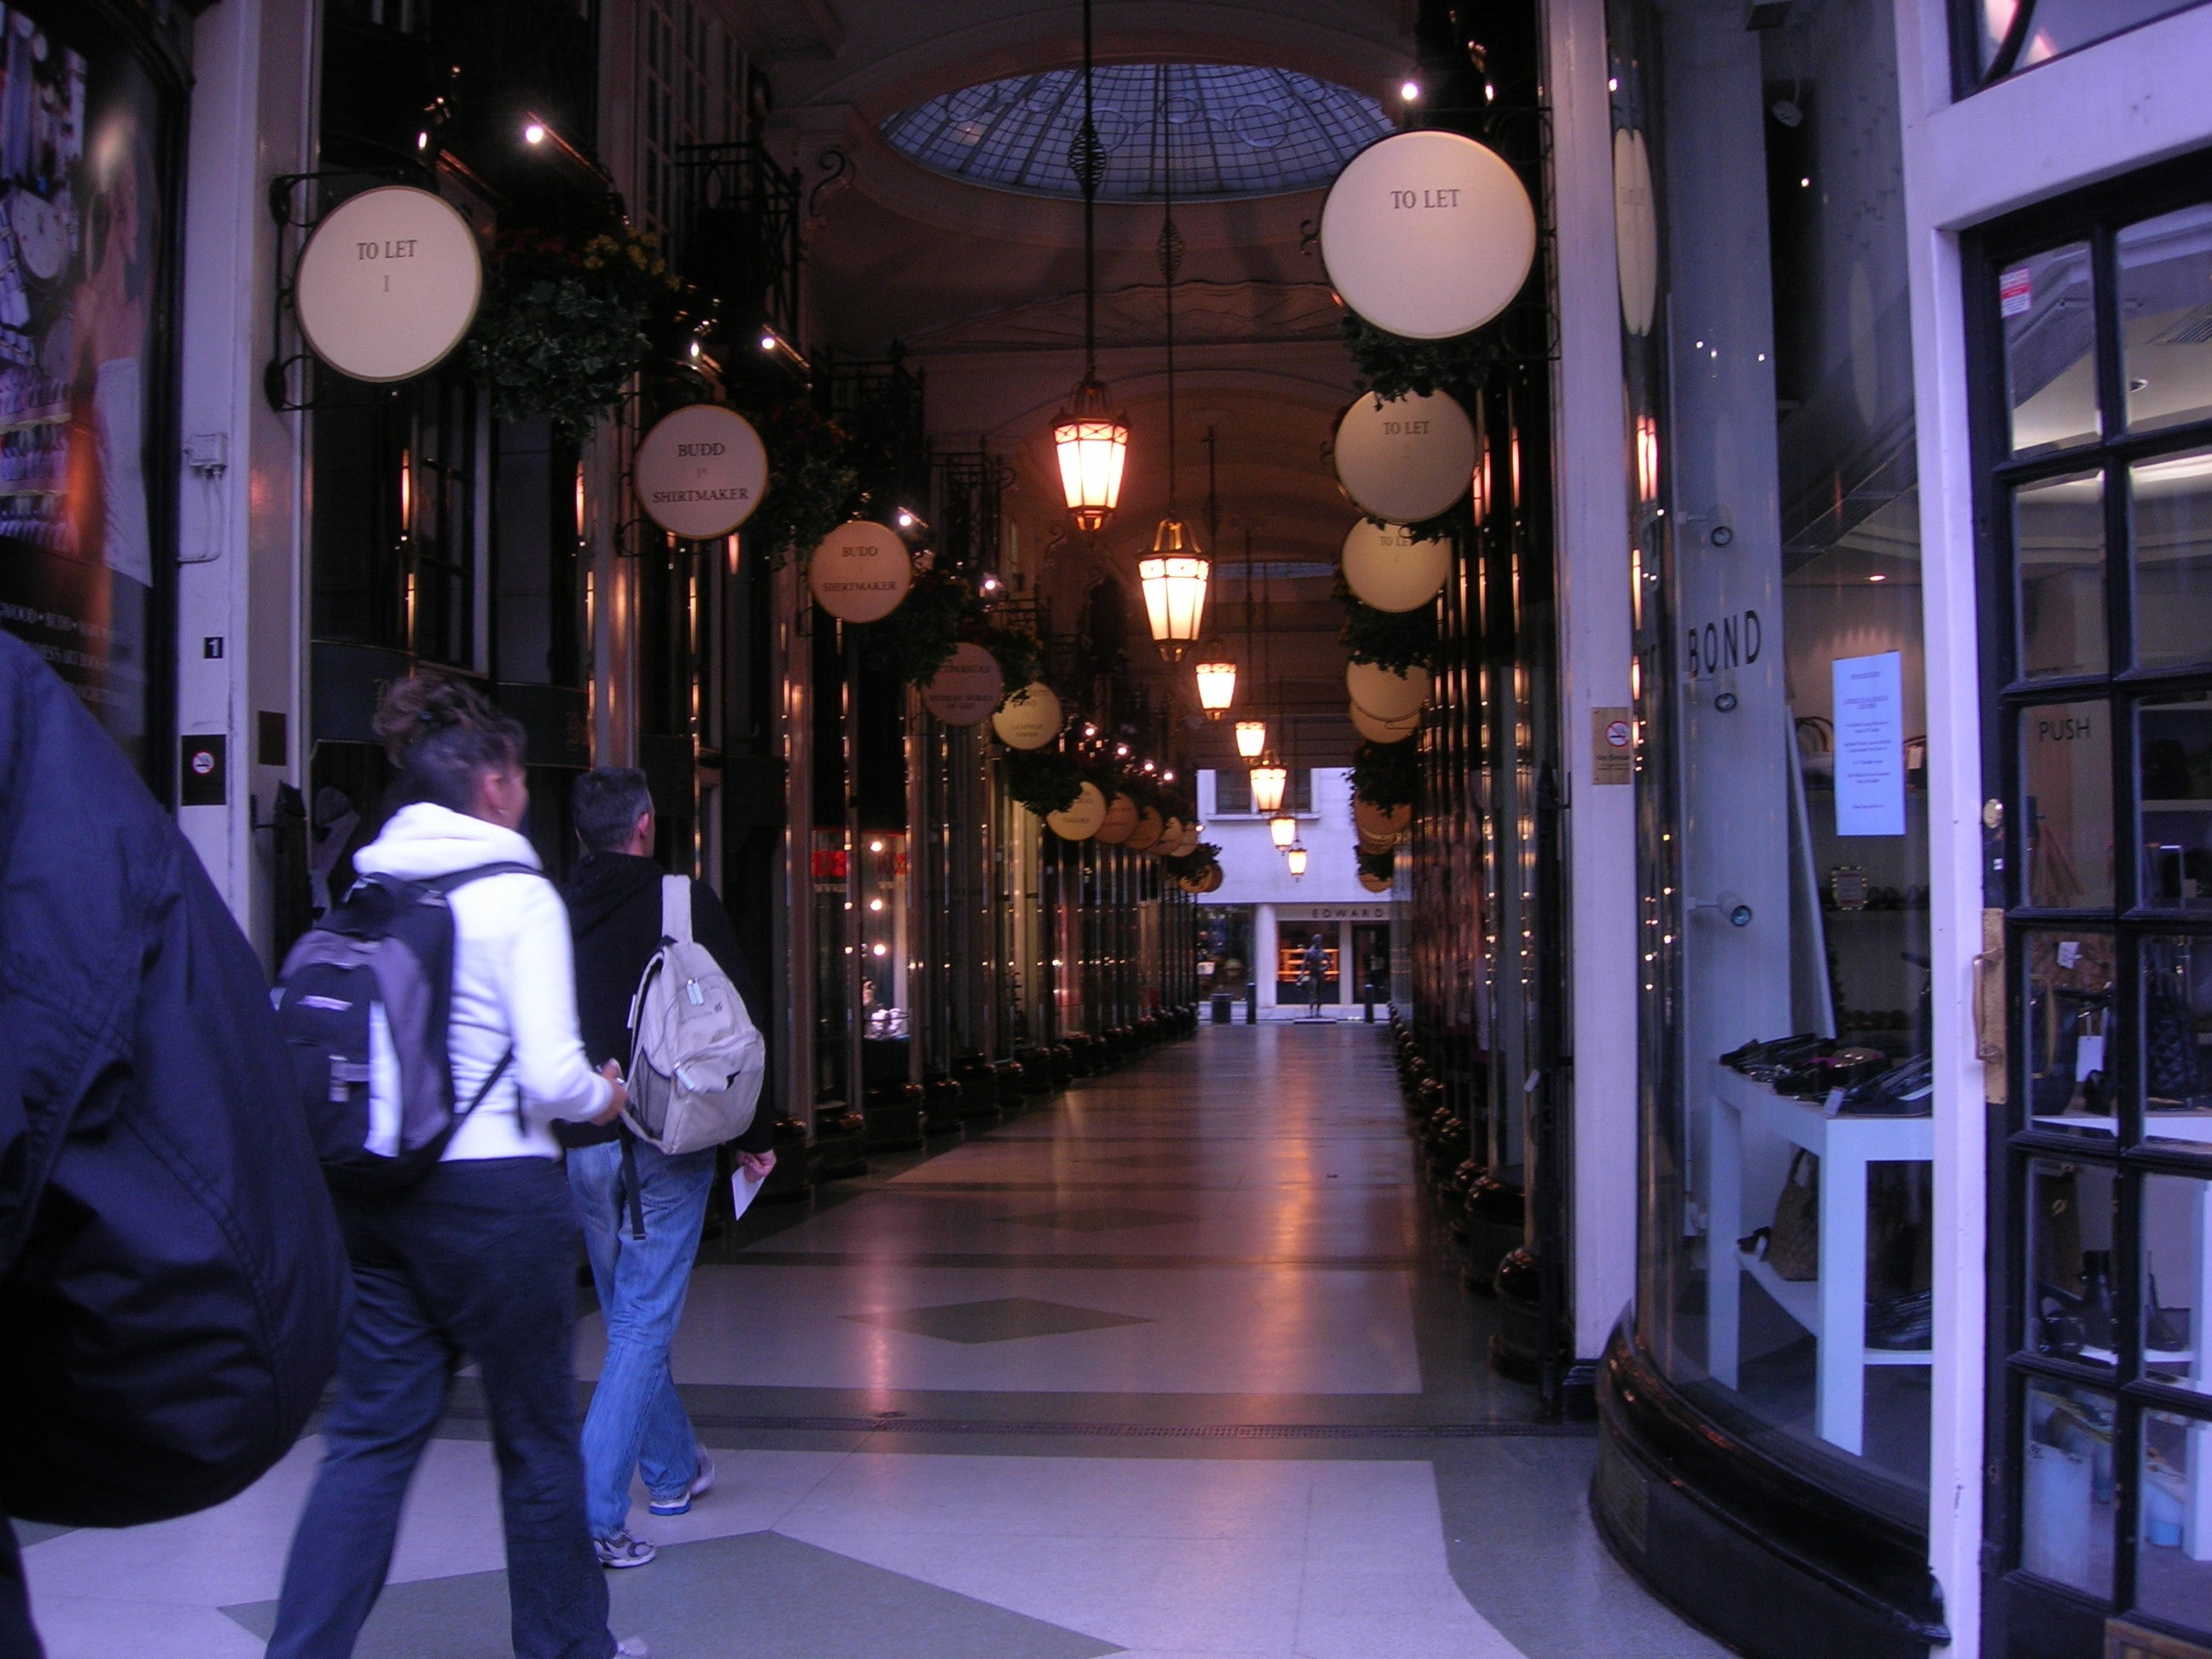 Restaurante en Burlington Arcade